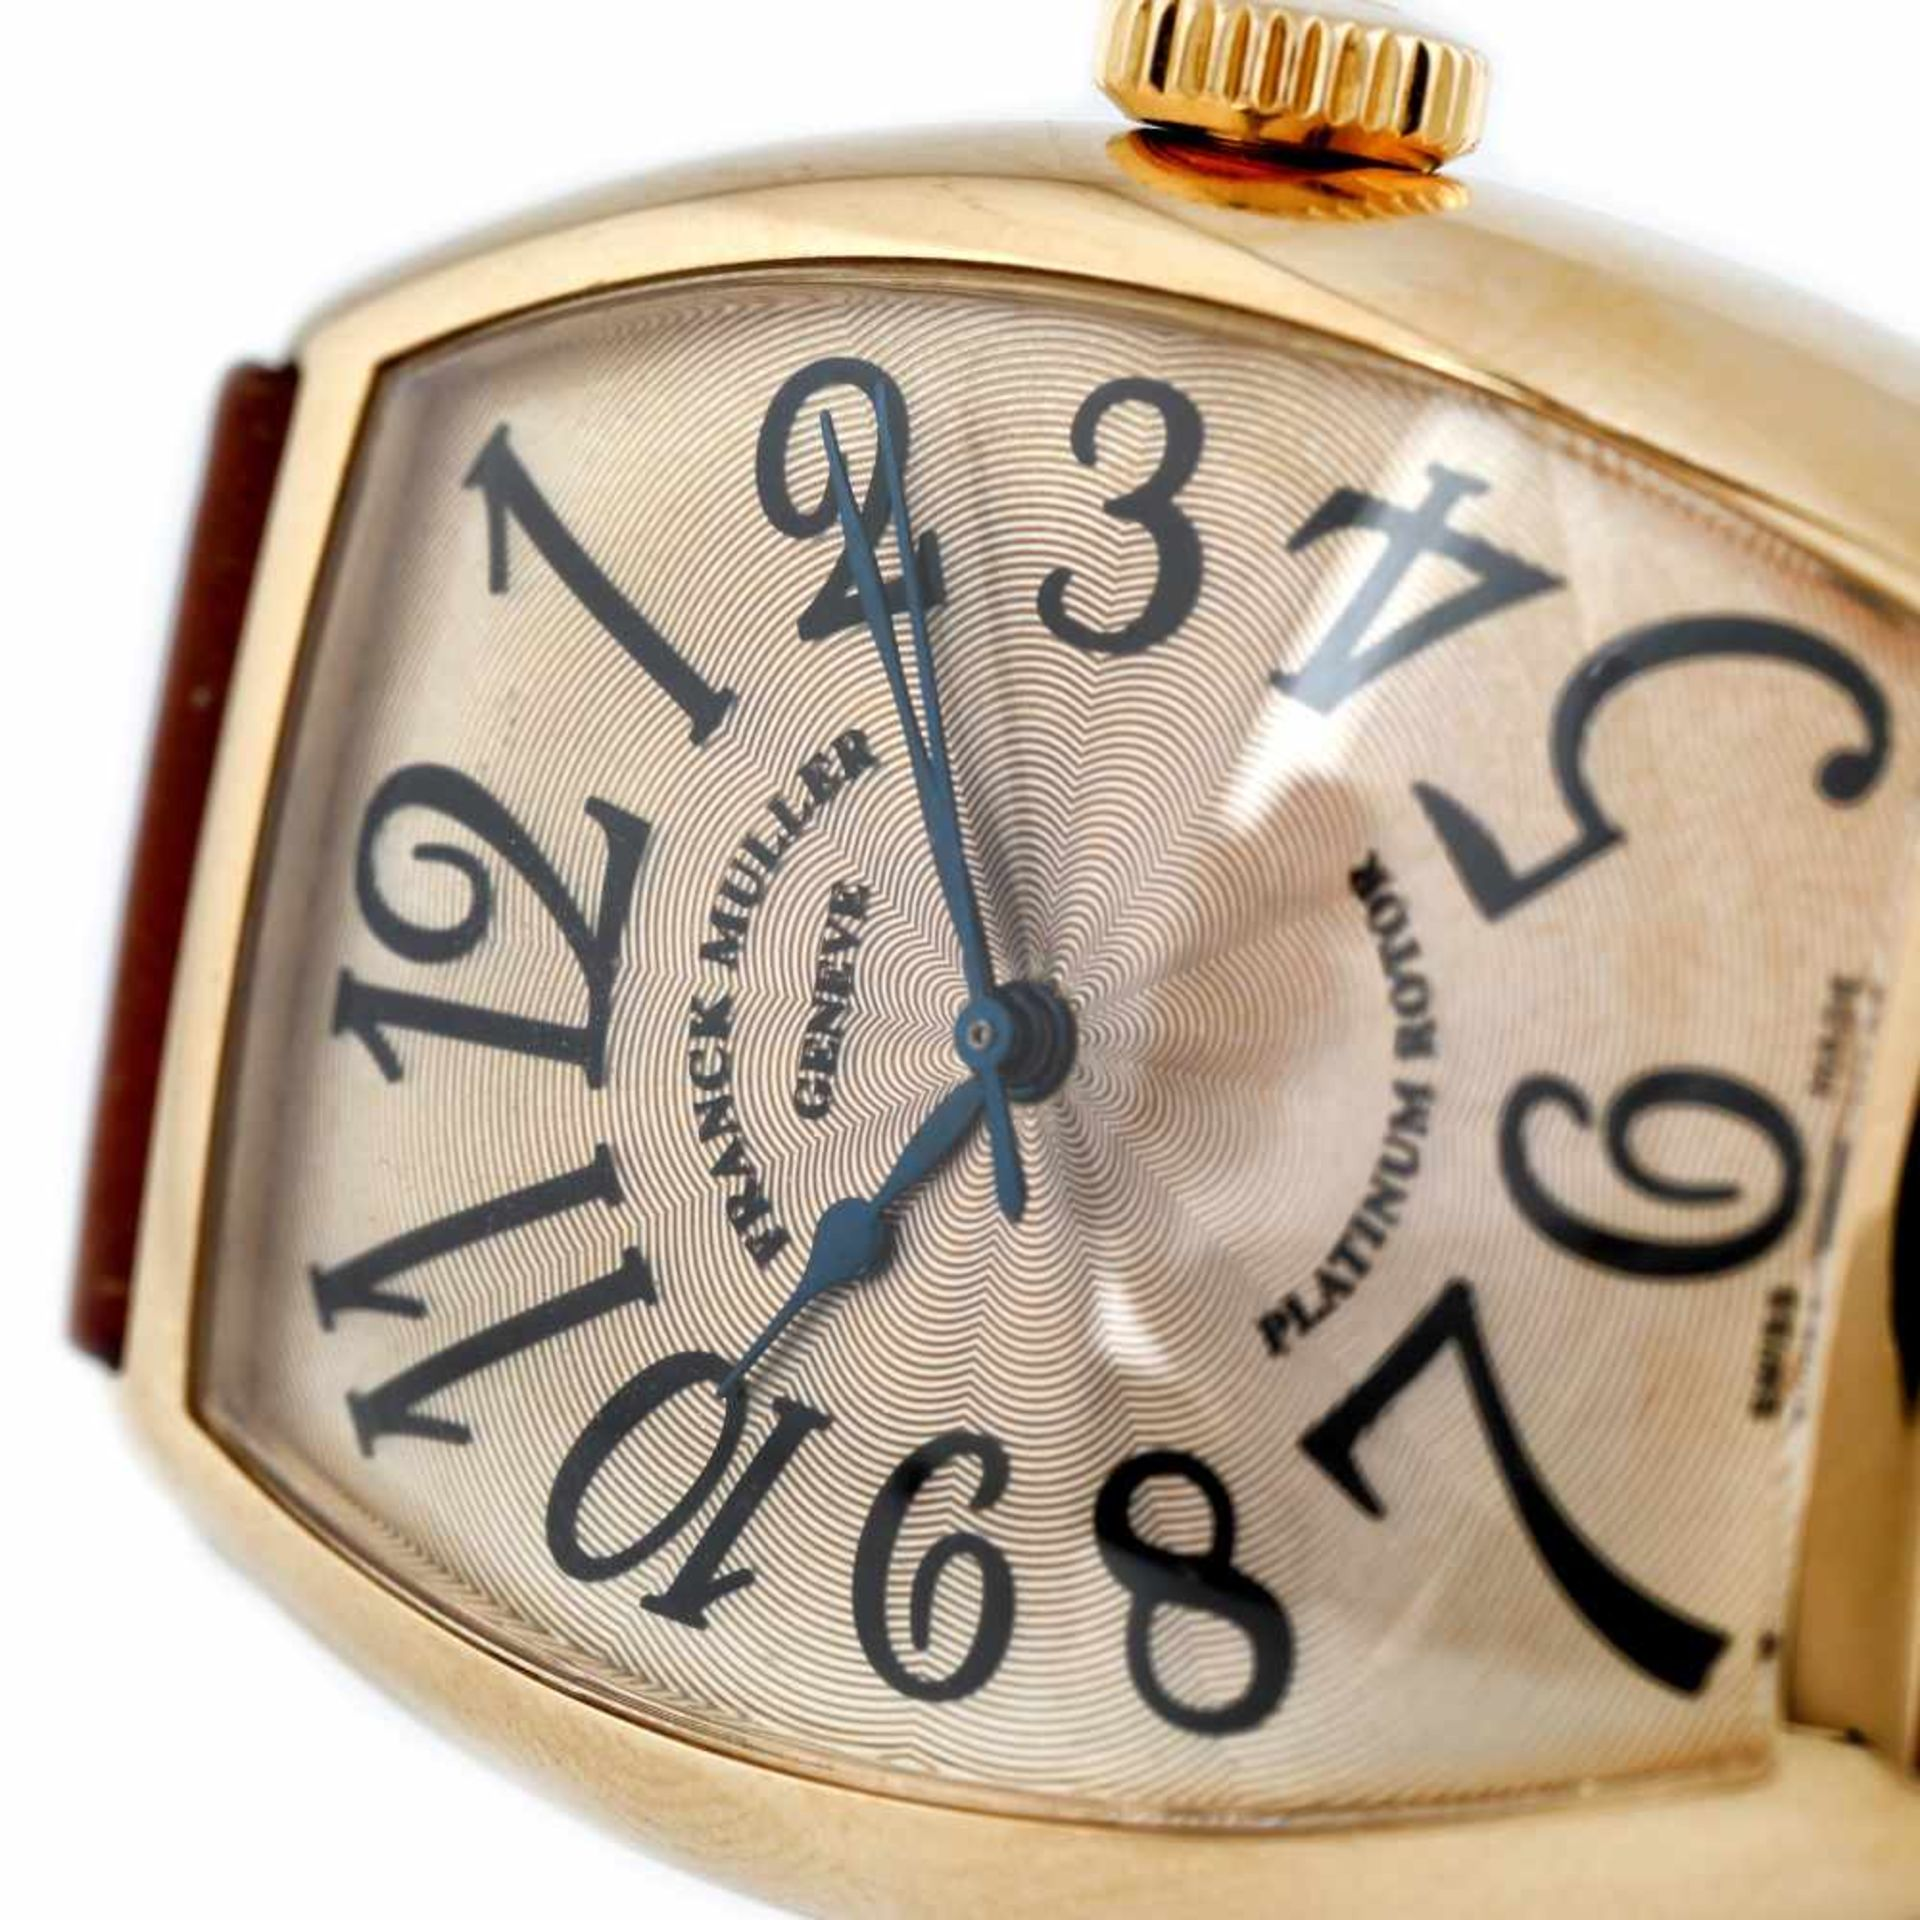 Franck Muller Casablanca wristwatch, gold, men, provenance documents - Bild 4 aus 4